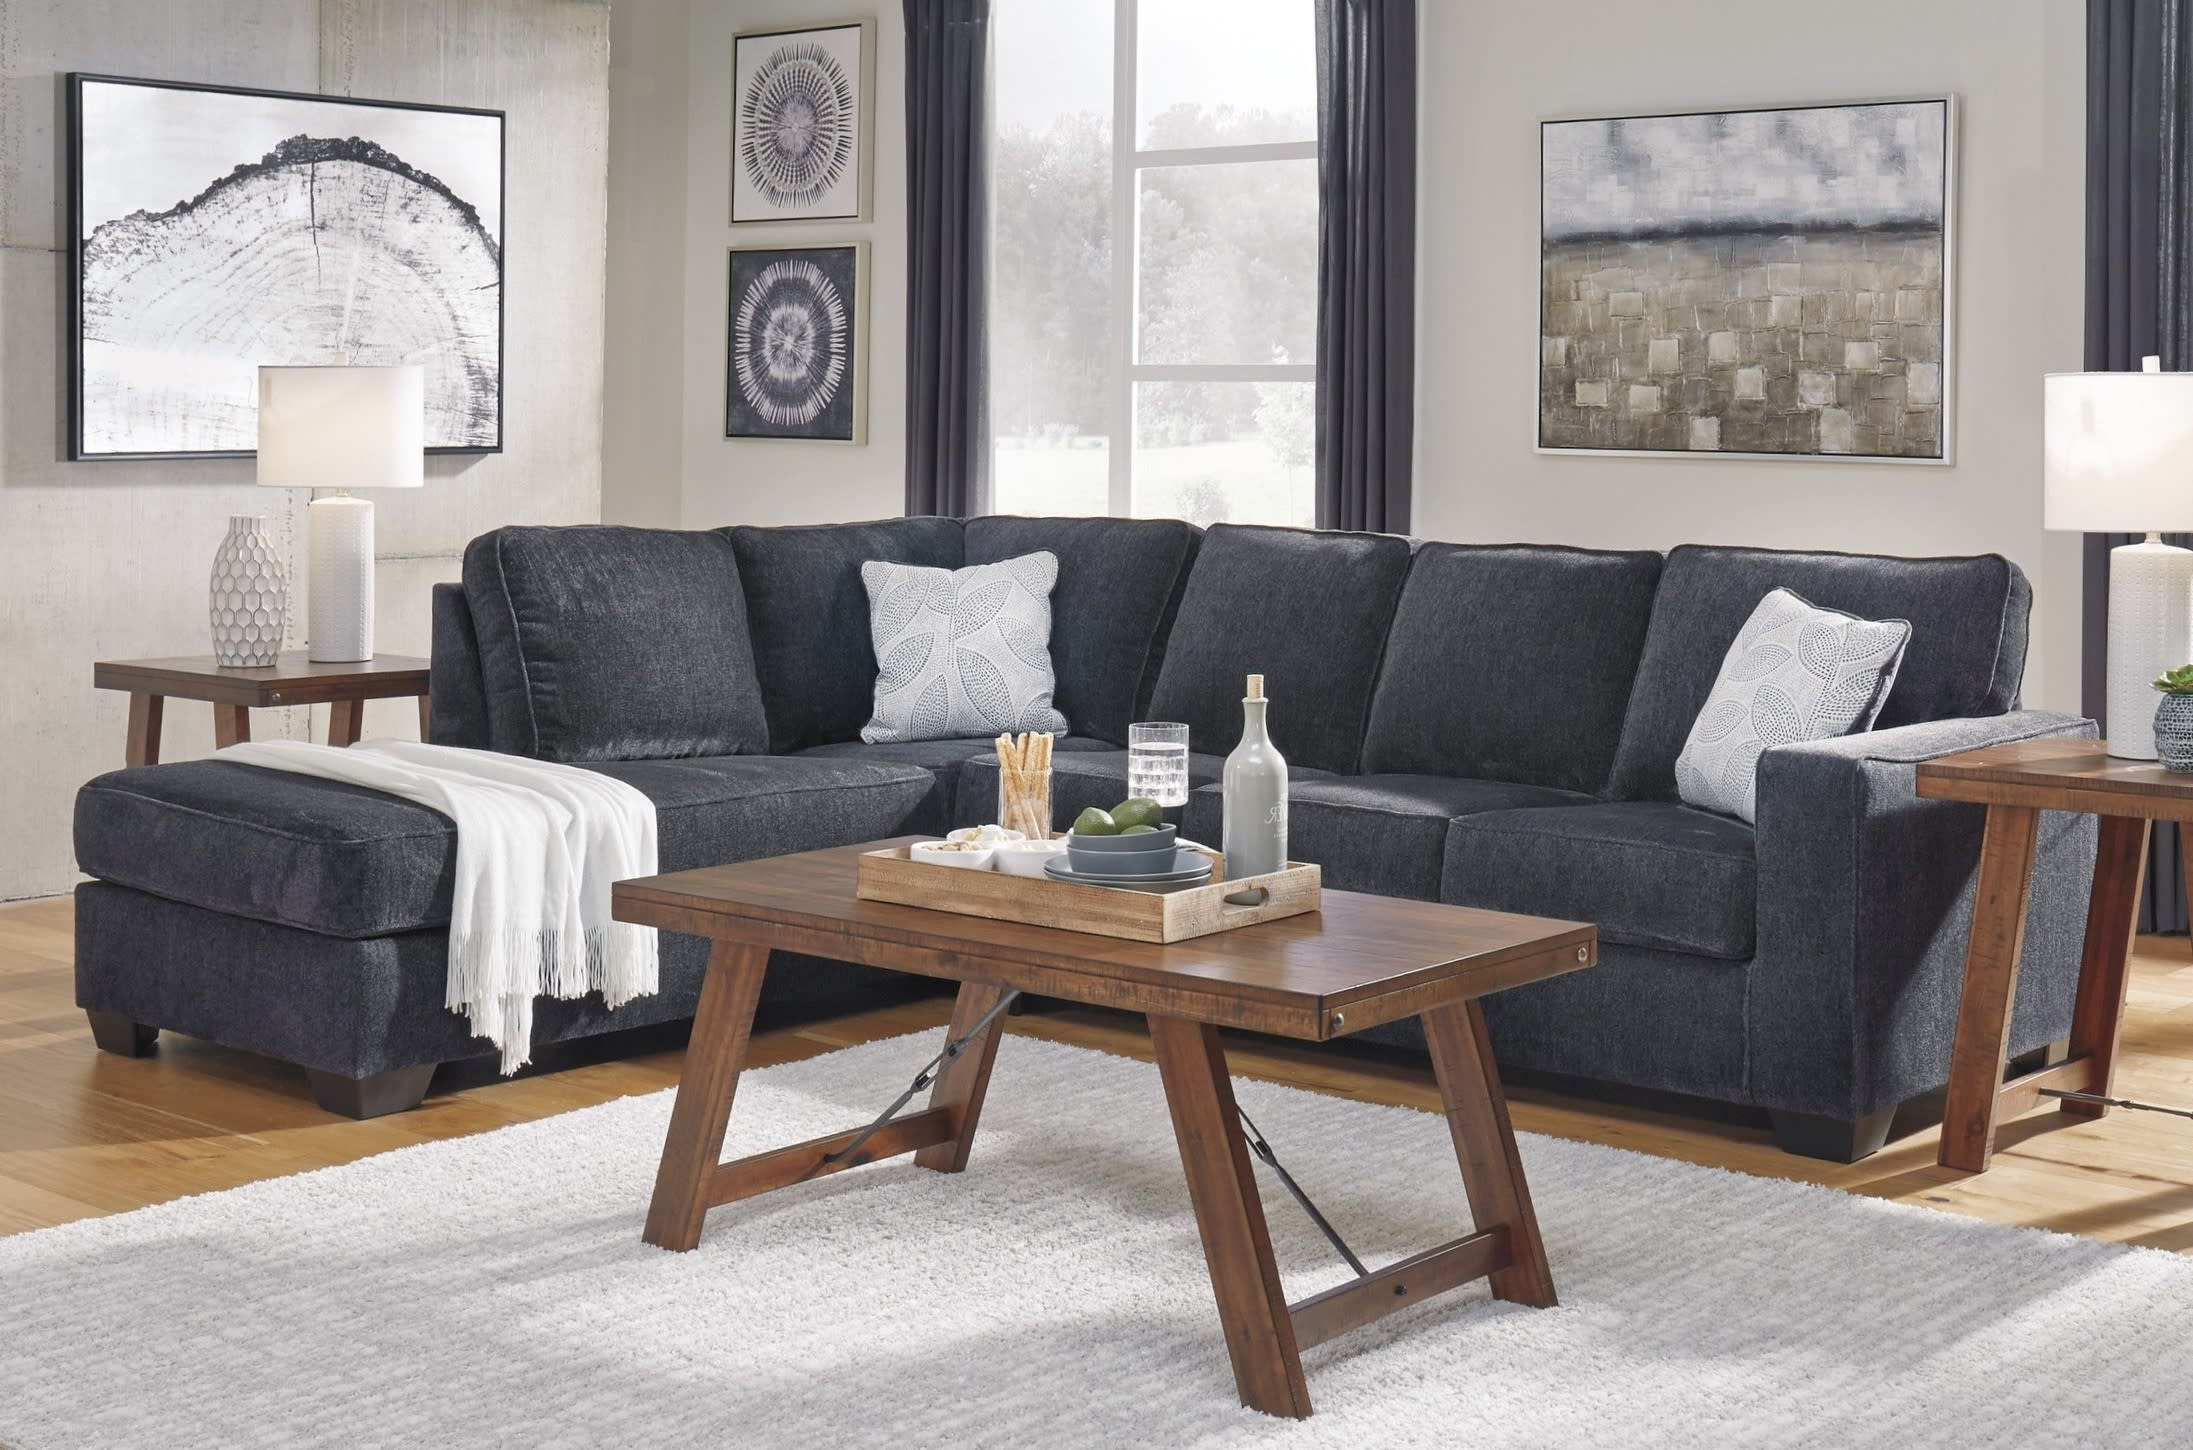 Signature Design By Ashley Altari Slate 2 Piece Left Facing Chaise Sleeper Sectional Sofa 8721316 8721383 Goedekers Com